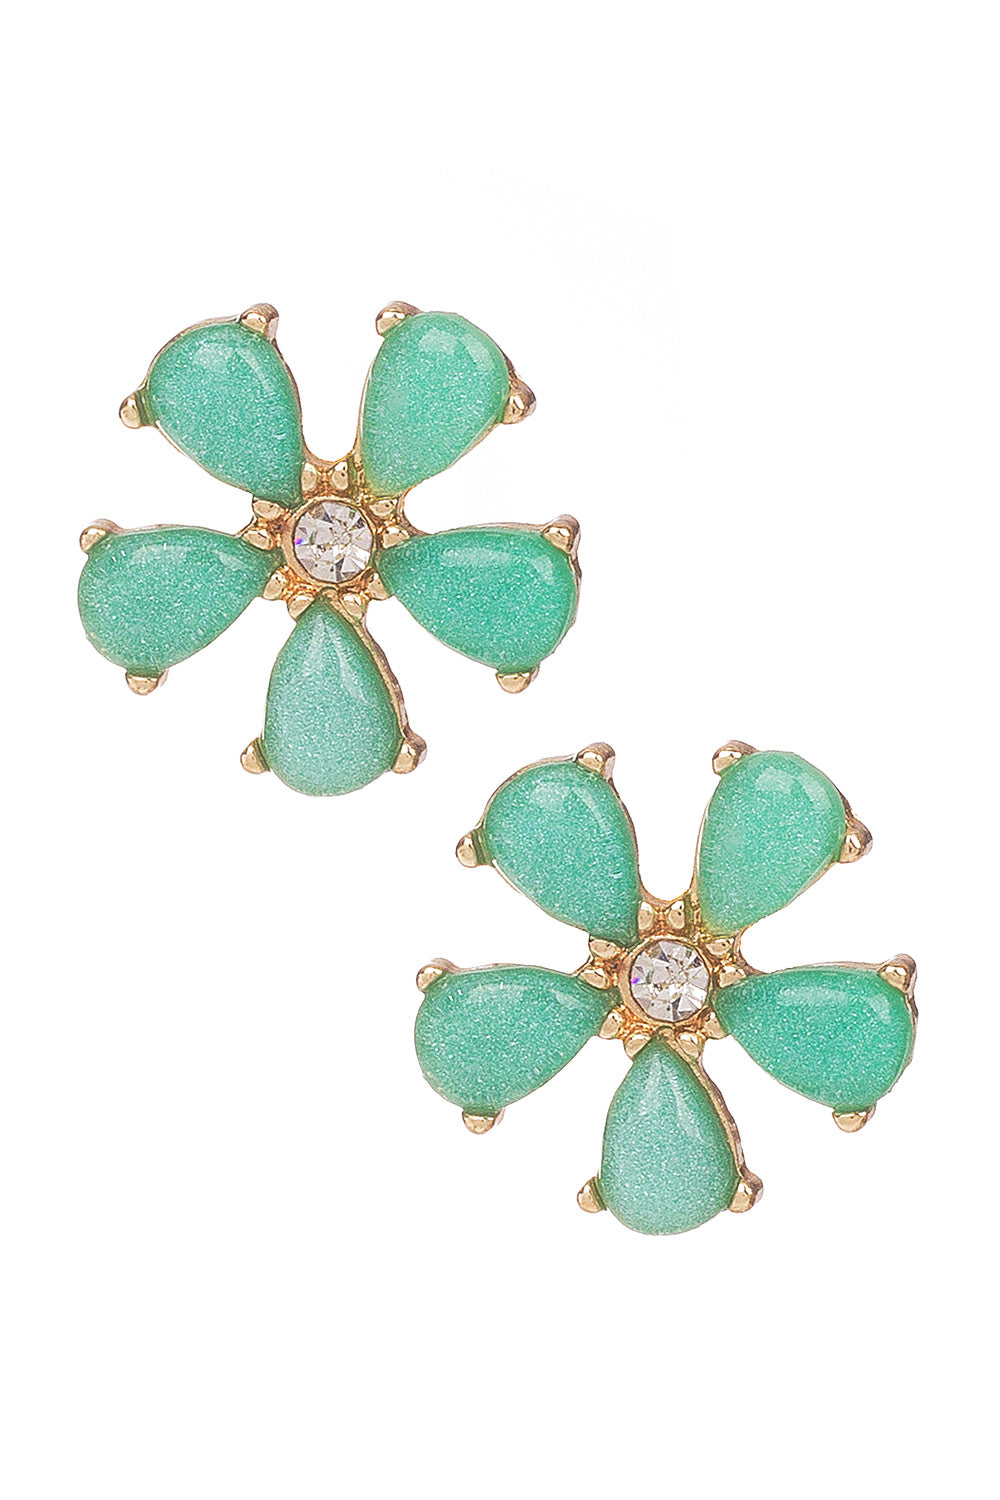 Type 1 Miniature Mint Earrings